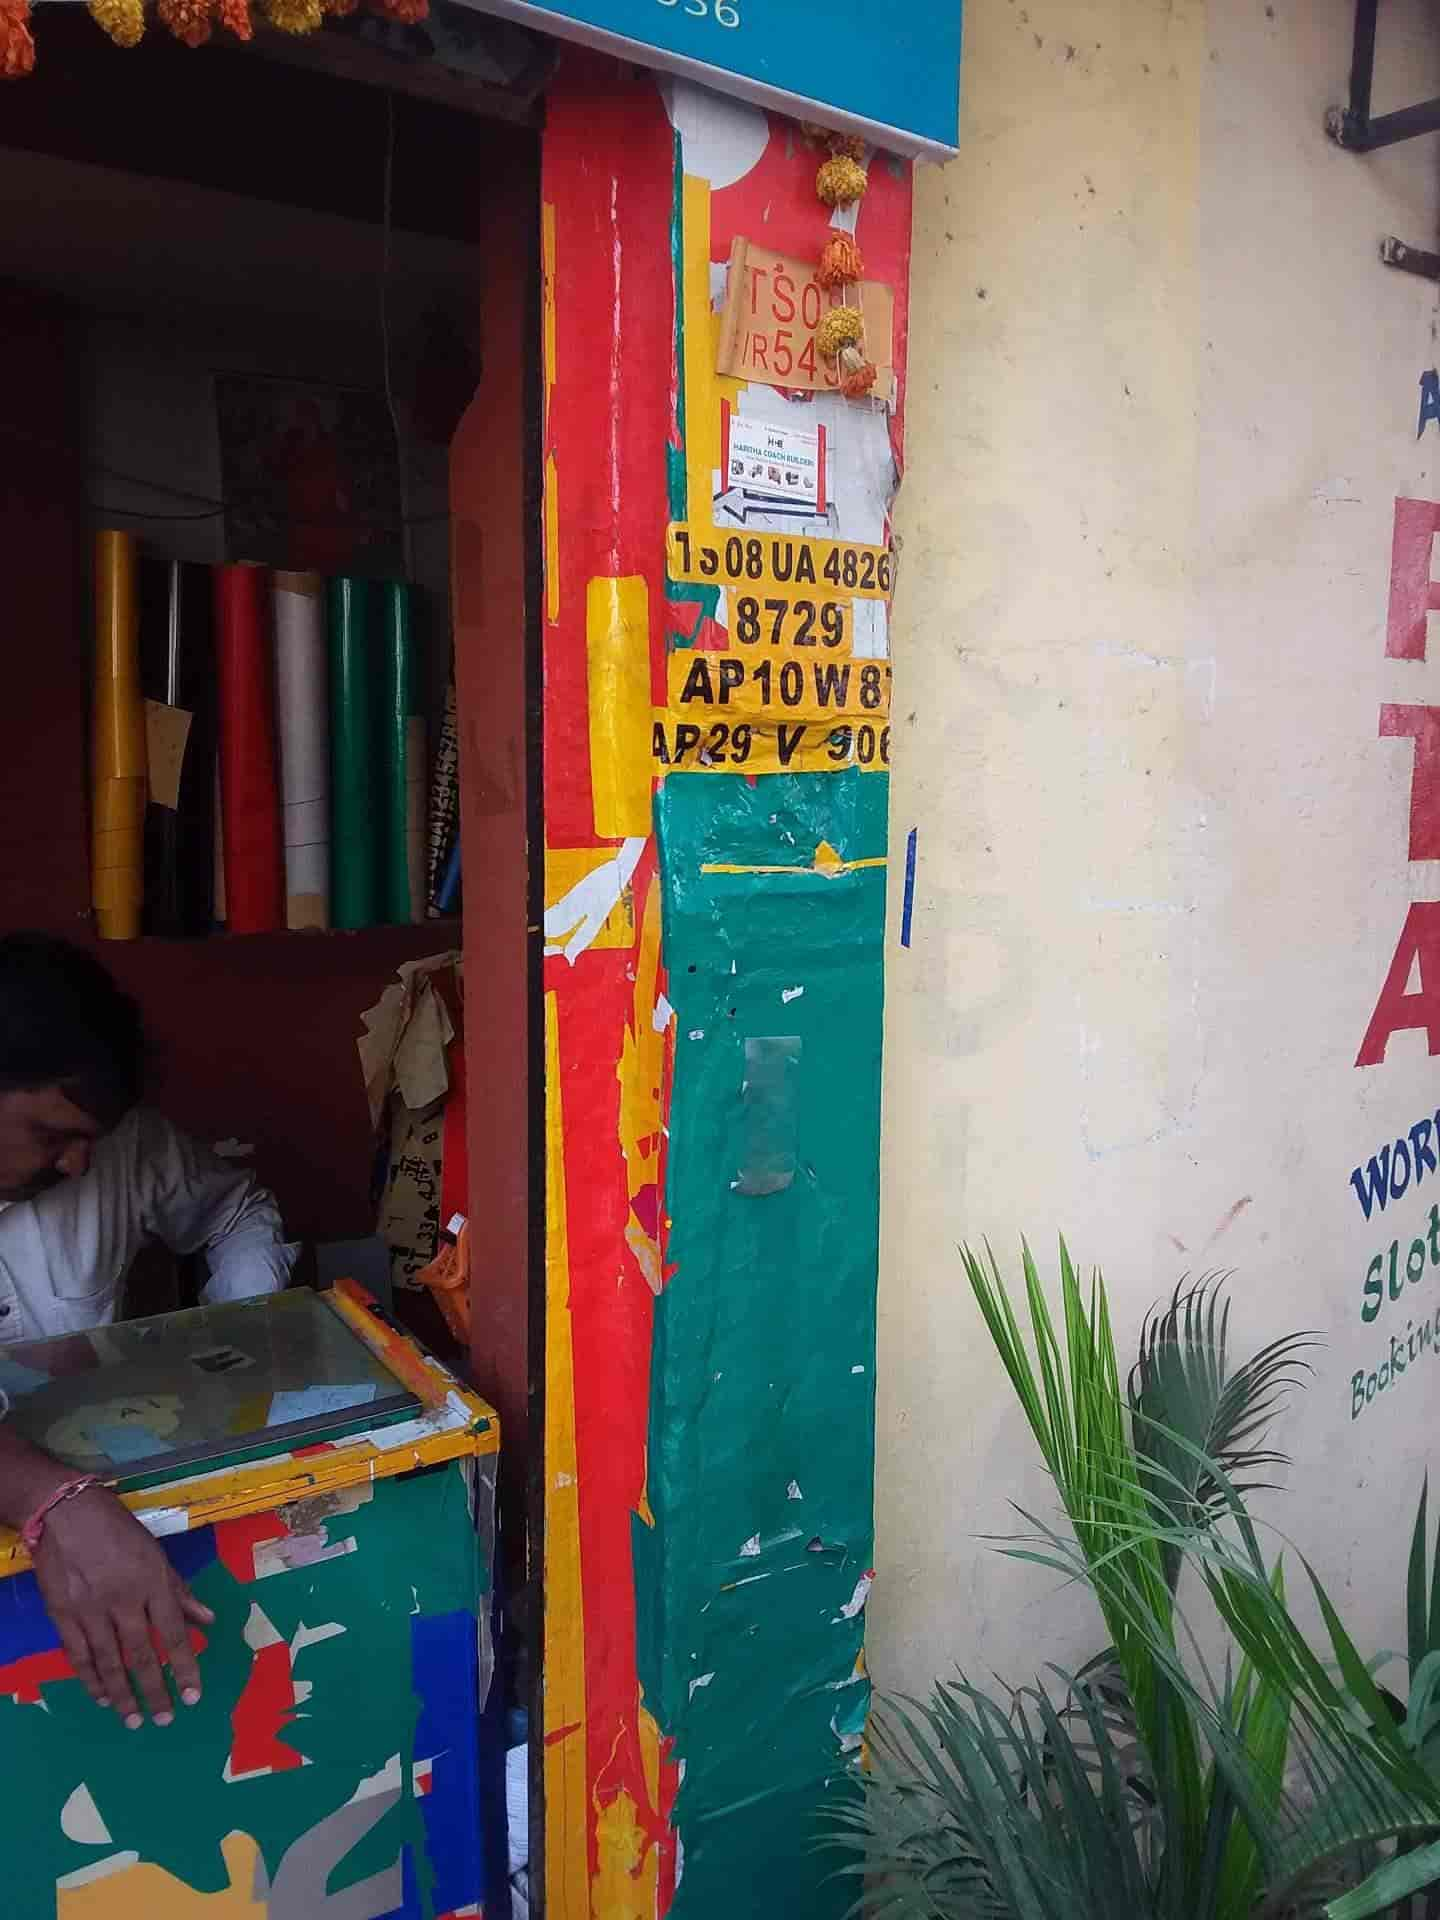 Ramana Radium Works, Uppal - Radium Sticker Dealers in